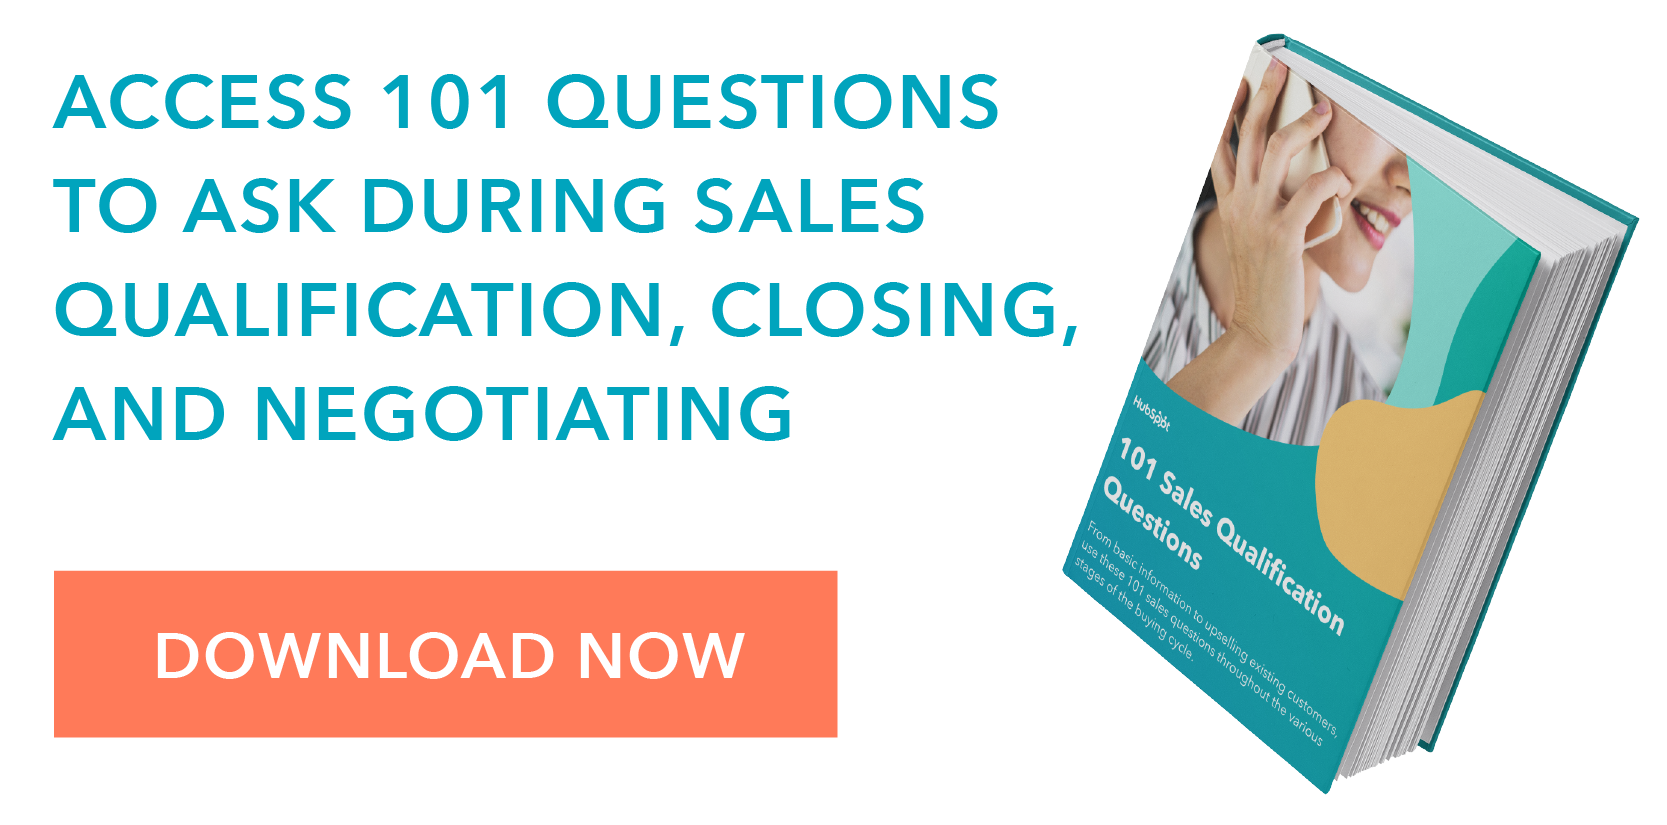 39 Sales Questions to Ask a Customer to Determine Their Needs